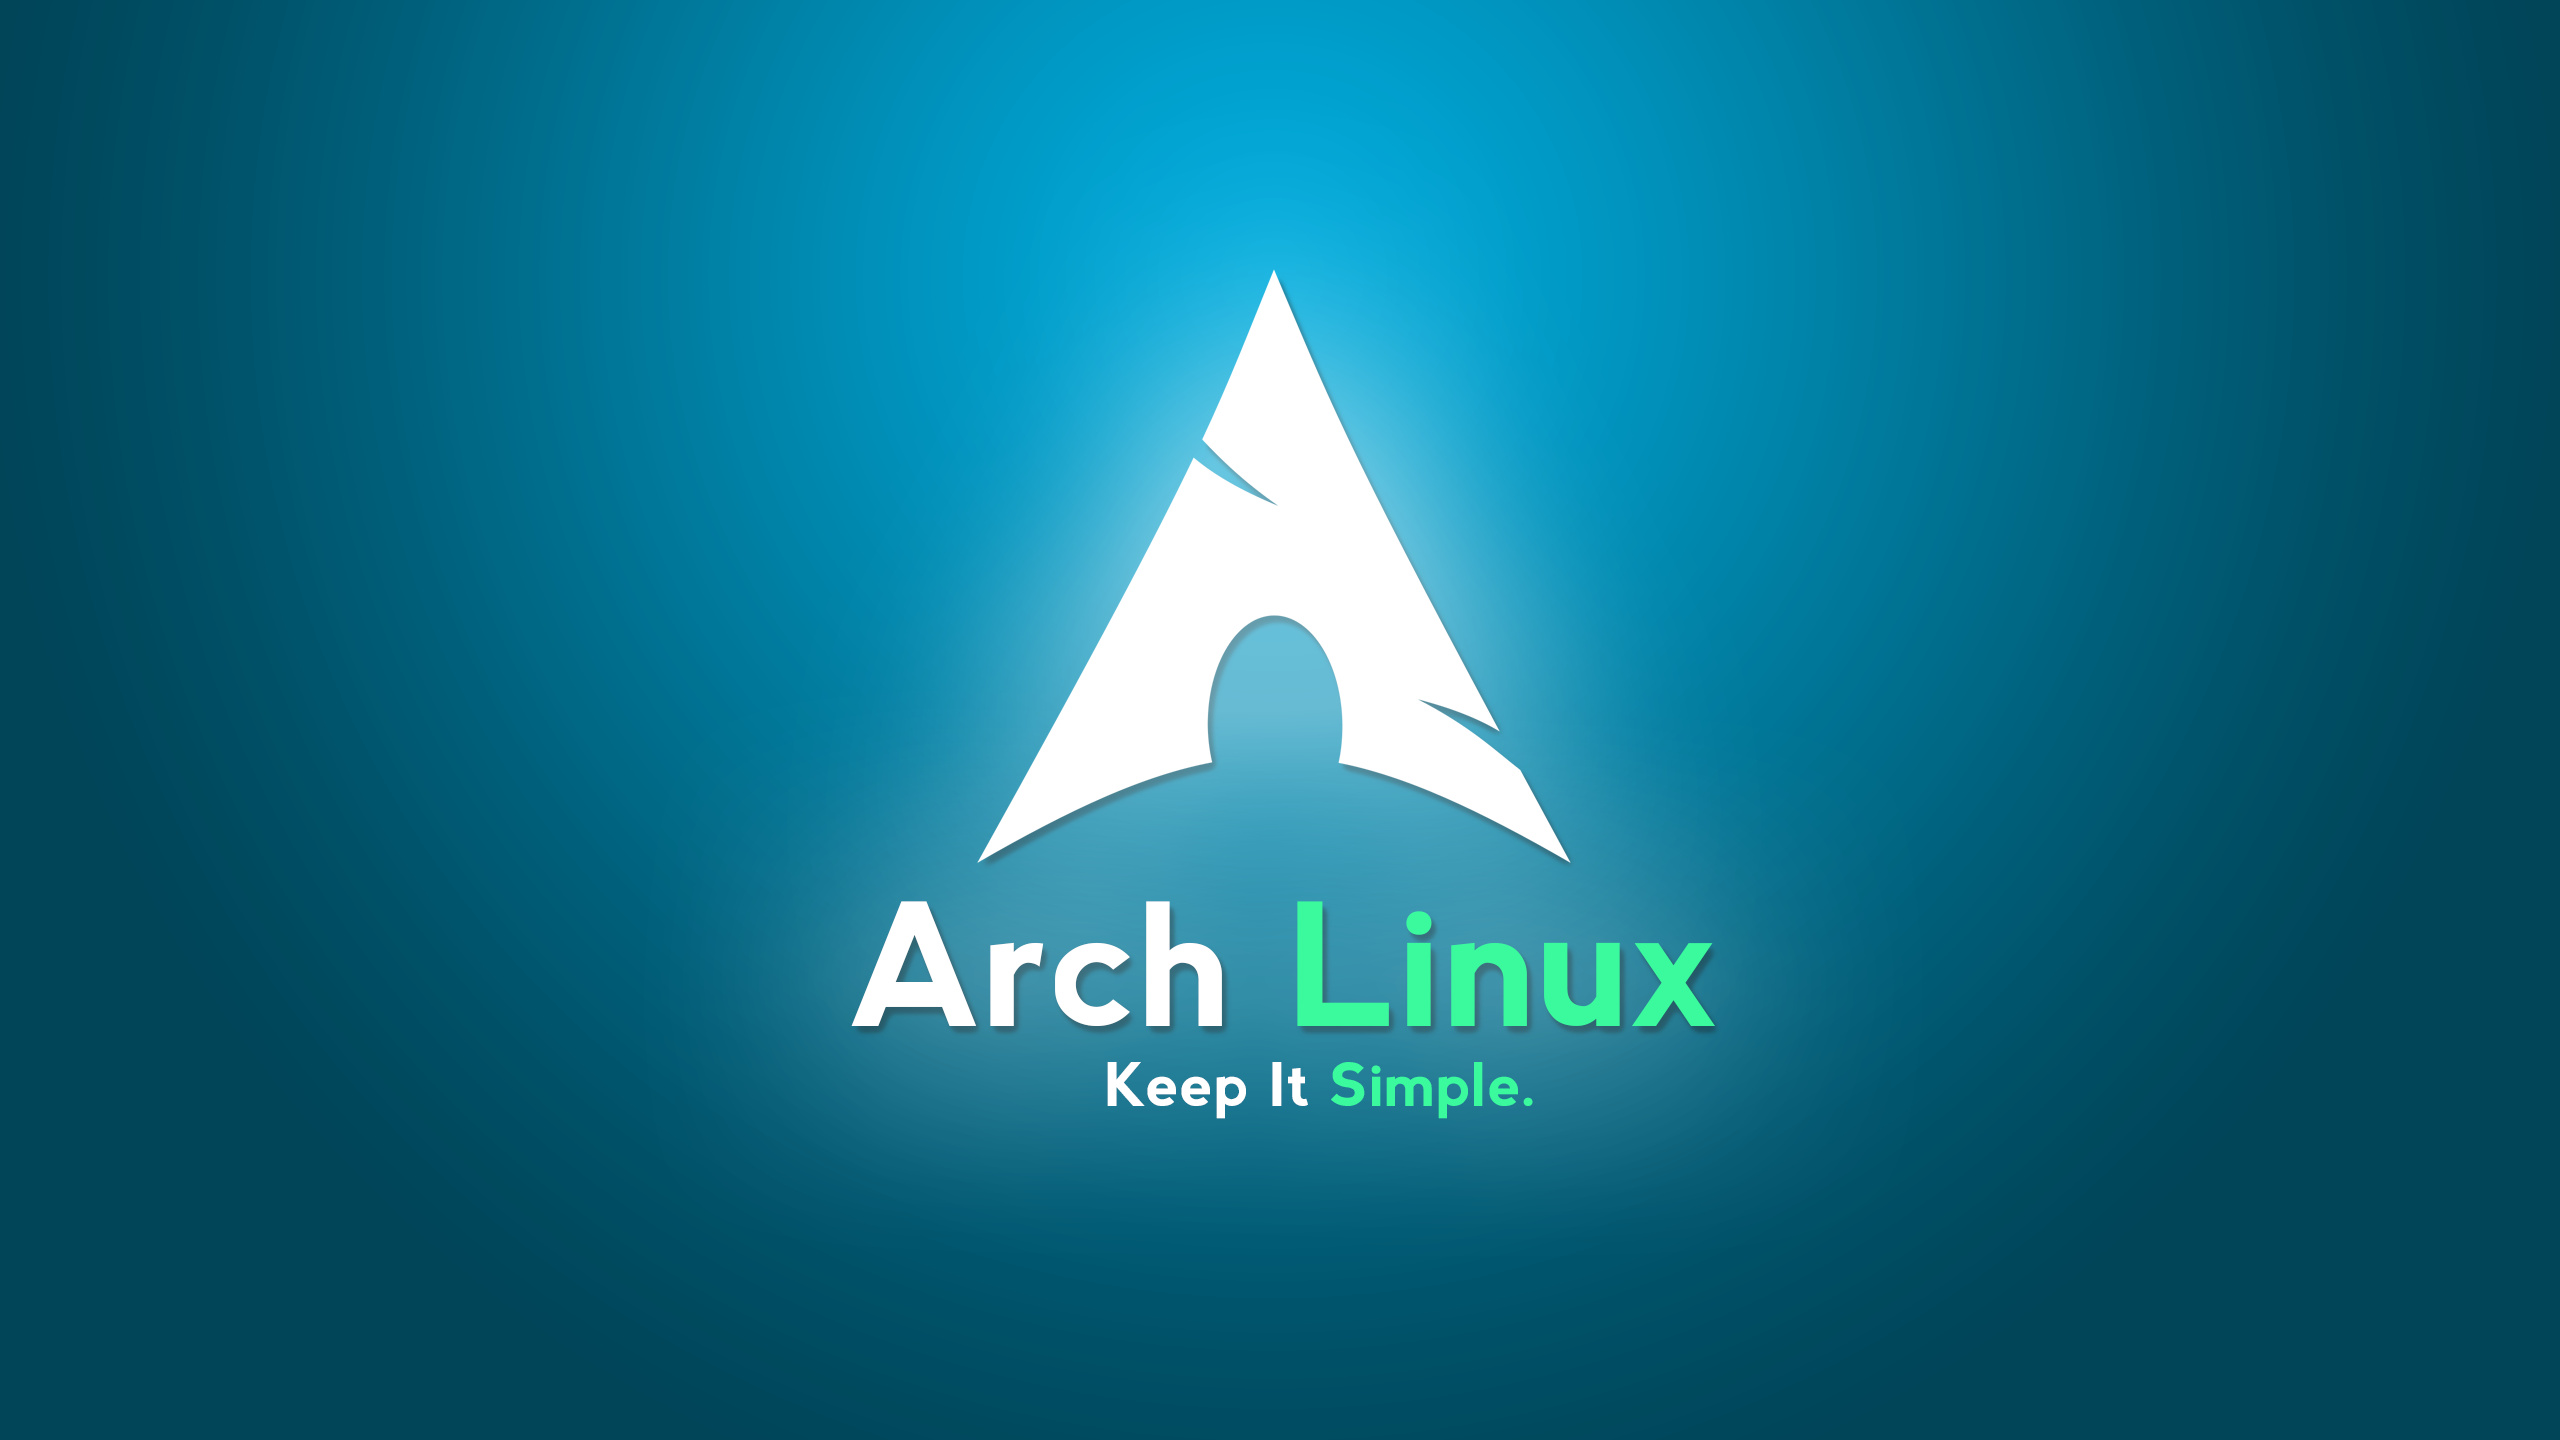 Arch linux 20171101 is now available for download with linux arch linux 20171101 released baditri Choice Image